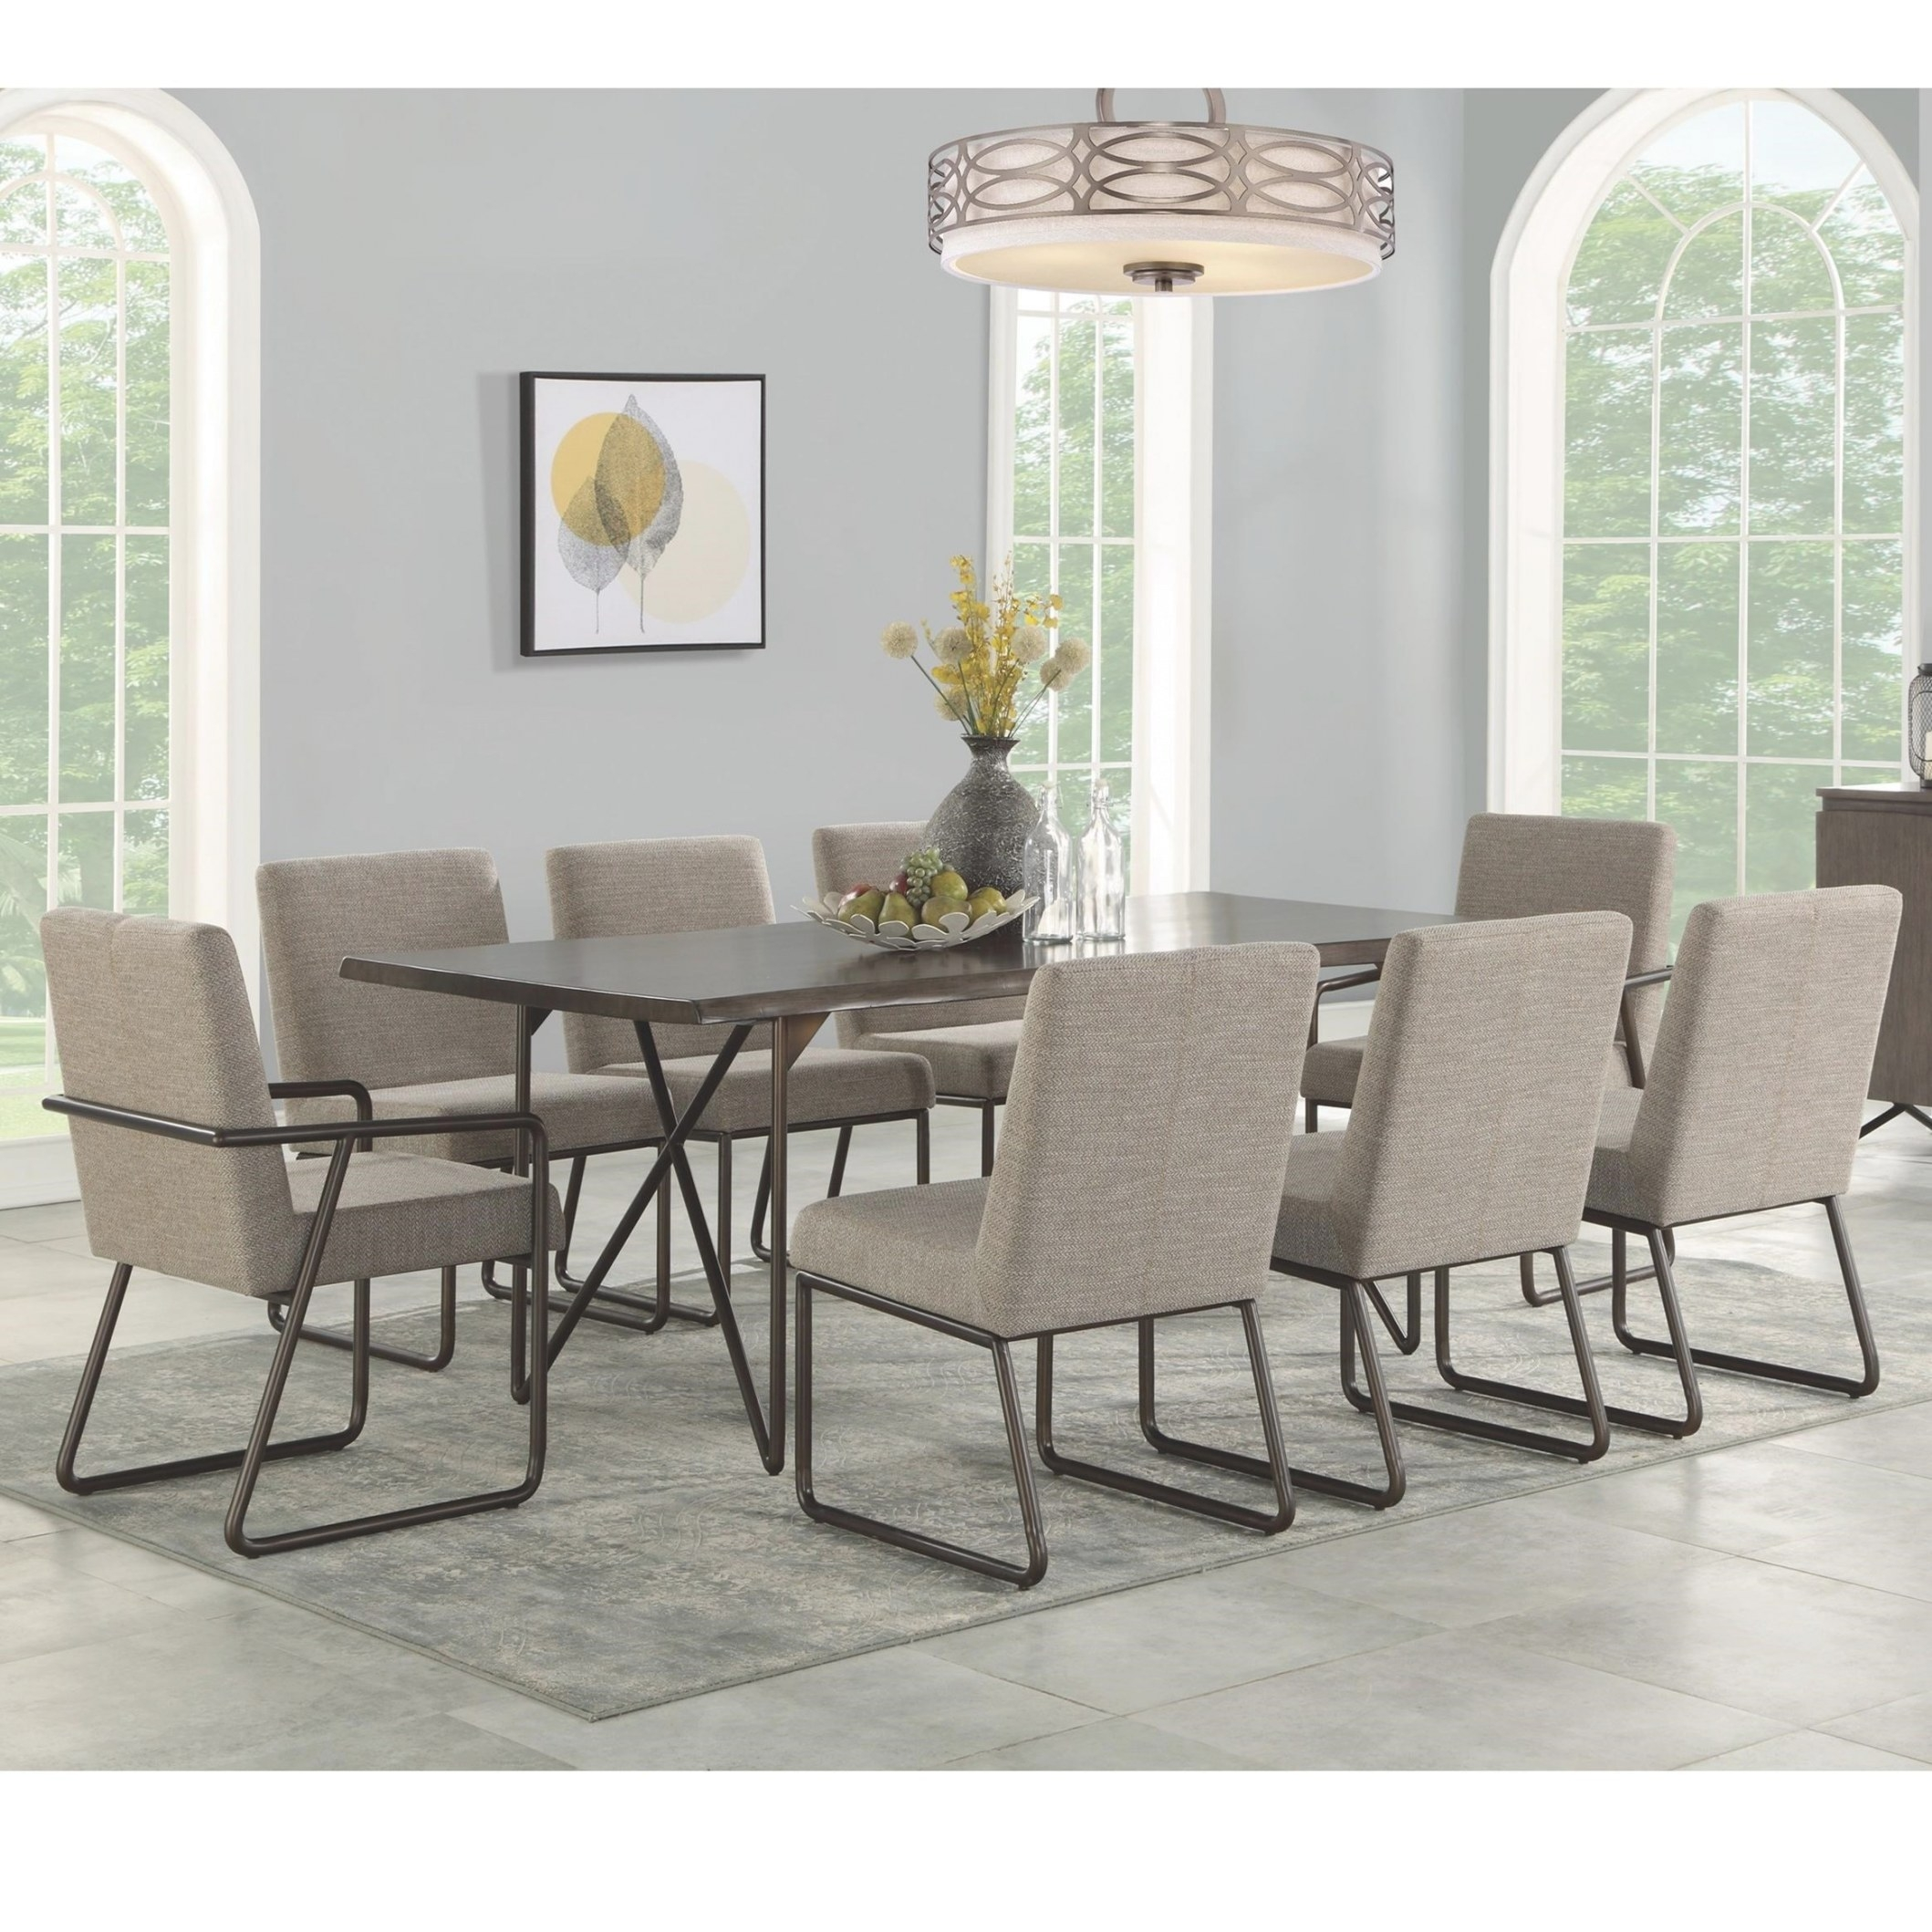 Flexsteel Shadow Mid-Century Modern 9-Piece Table And pertaining to 9 Piece Dining Set